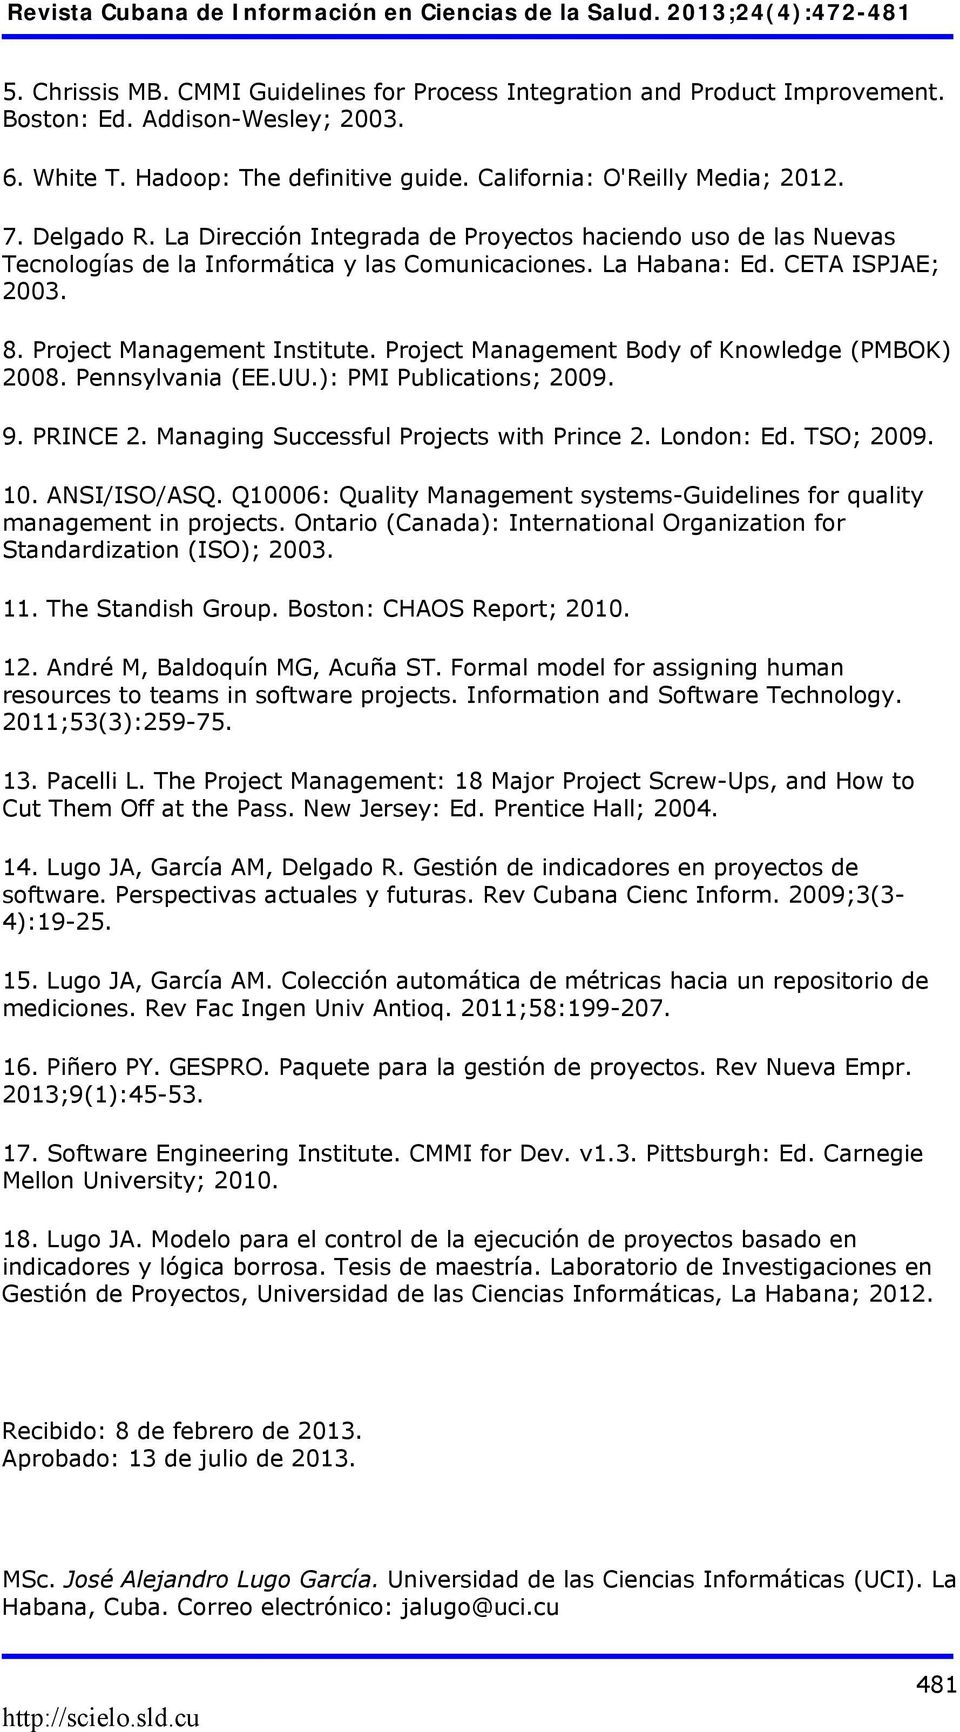 Project Management Body of Knowledge (PMBOK) 2008. Pennsylvania (EE.UU.): PMI Publications; 2009. 9. PRINCE 2. Managing Successful Projects with Prince 2. London: Ed. TSO; 2009. 10. ANSI/ISO/ASQ.